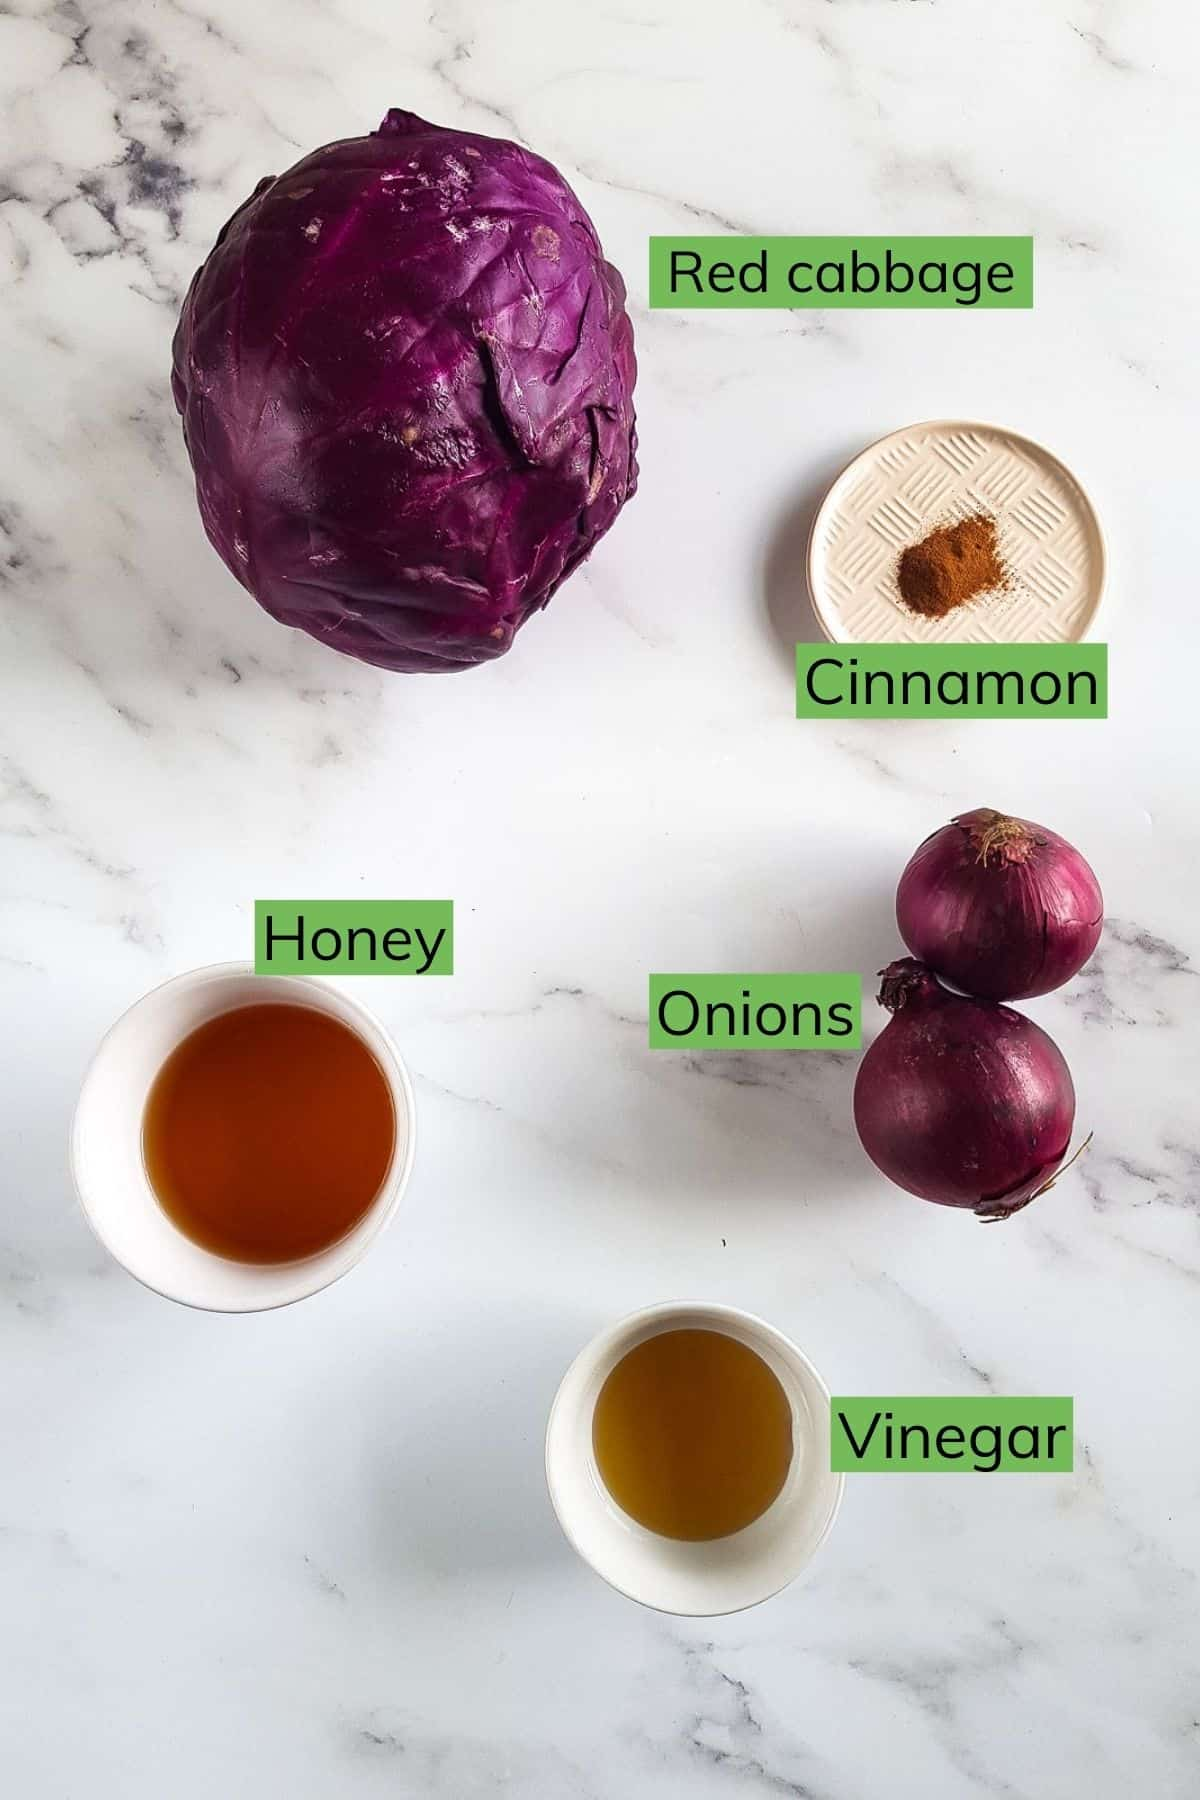 The ingredients needed to make the red cabbage laid out on a table.